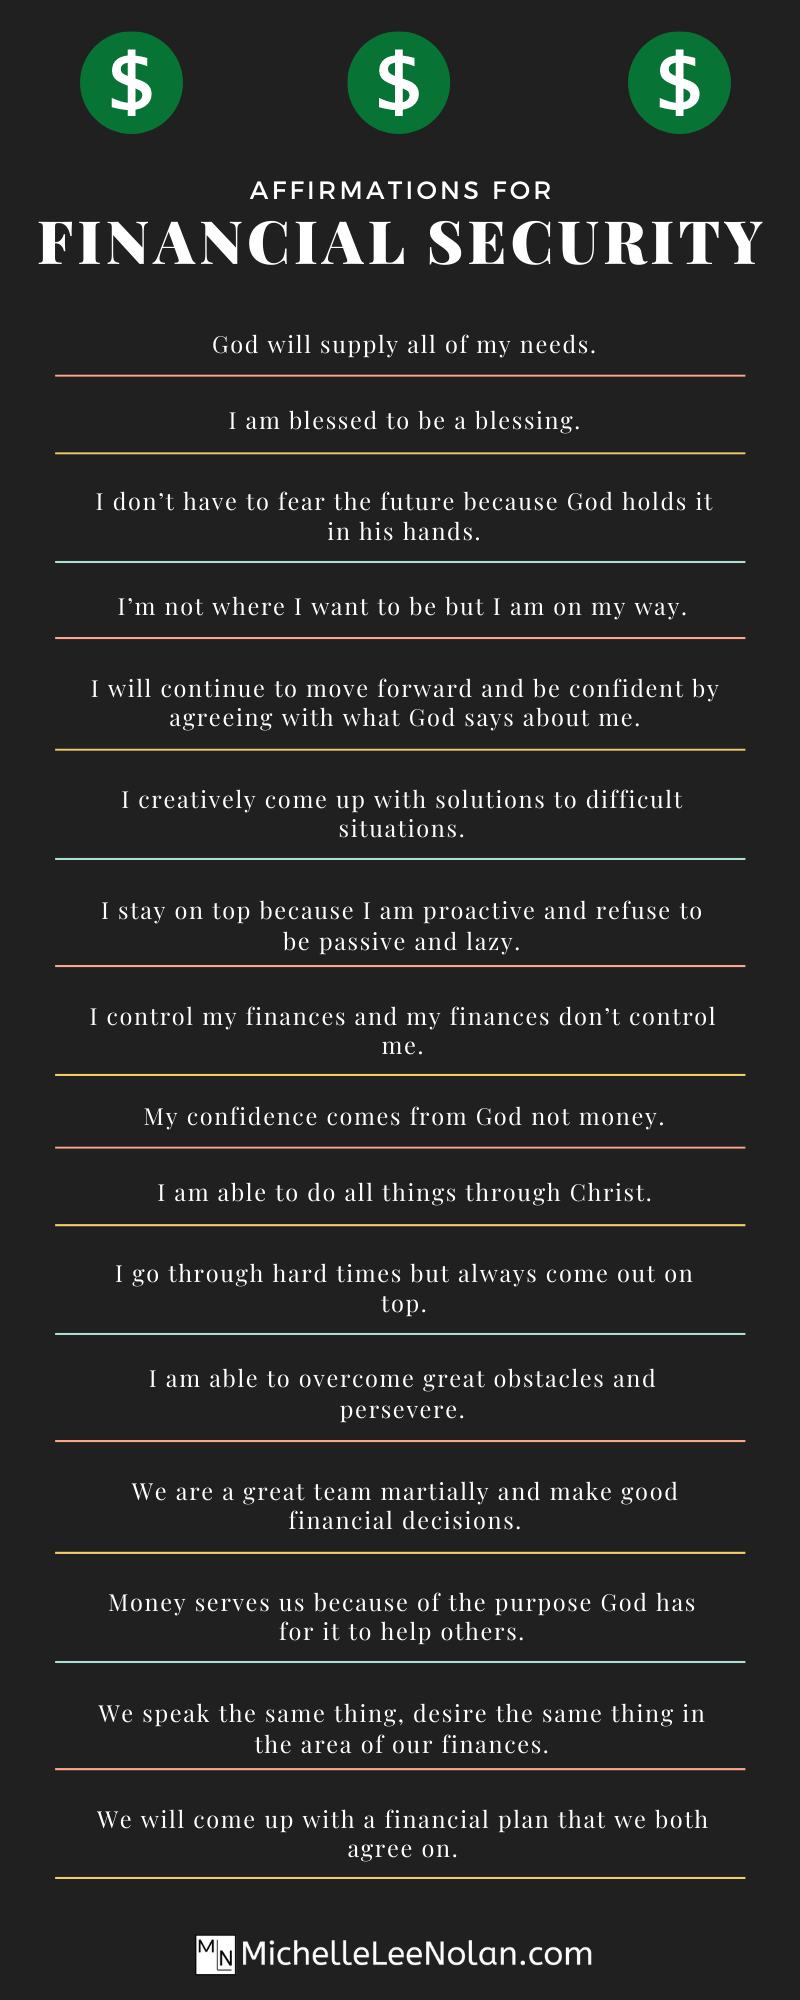 Beat financial insecurity with these positive affirmations